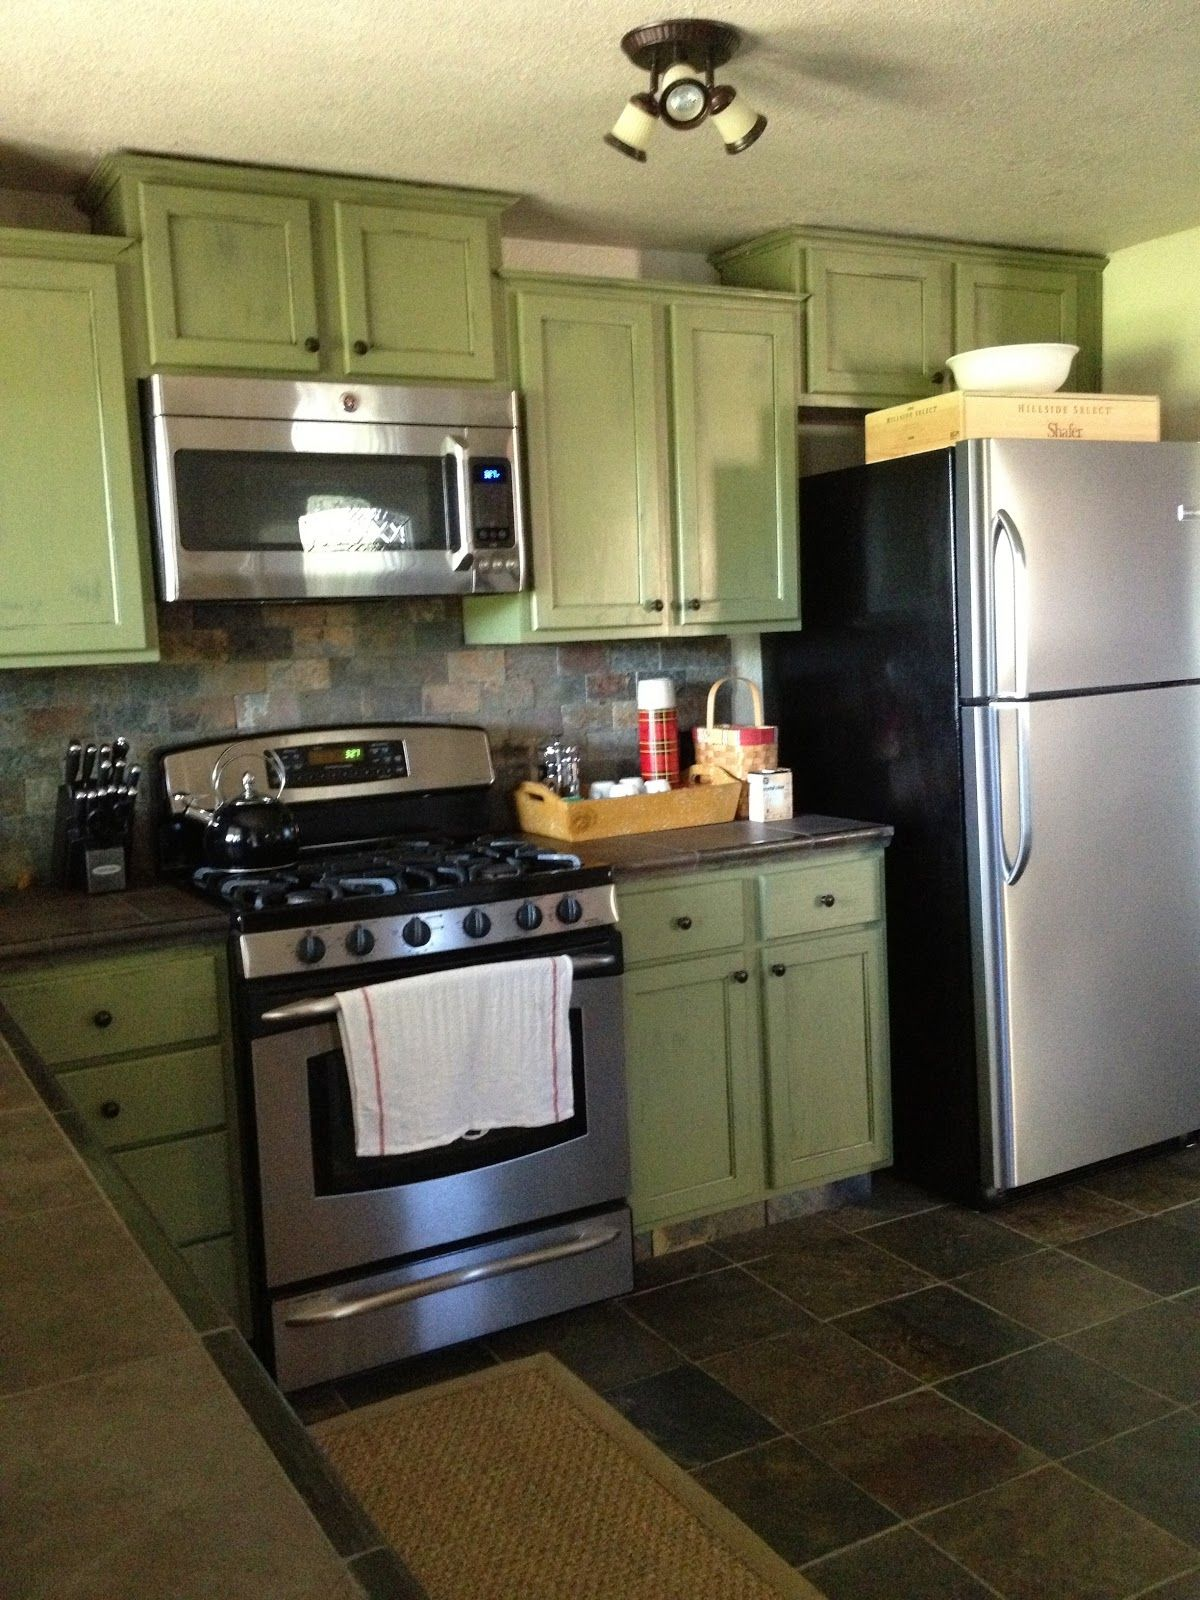 Sage Green Kitchen Cabinets With Black Appliances Green Kitchen Cabinets Green Country Kitchen Kitchen Design Small